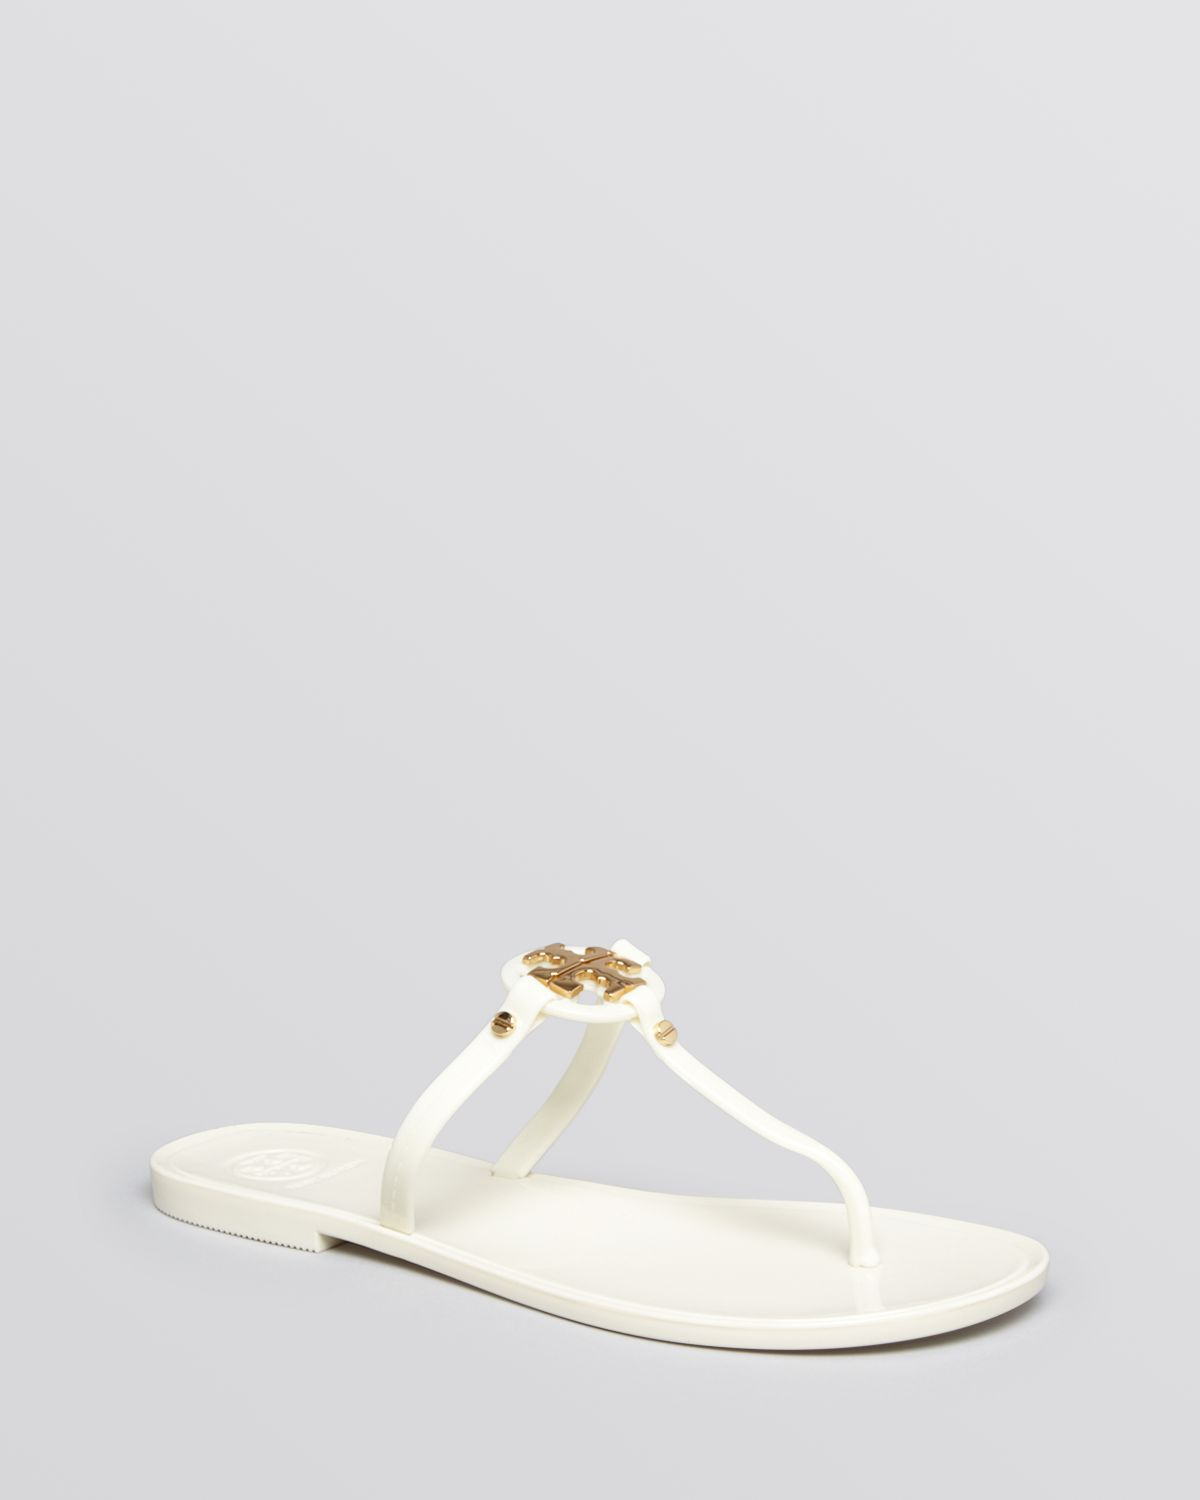 4c69bf8456f2 ... discount tory burch flat thong sandals mini miller jelly in white lyst  90399 c53c2 ...